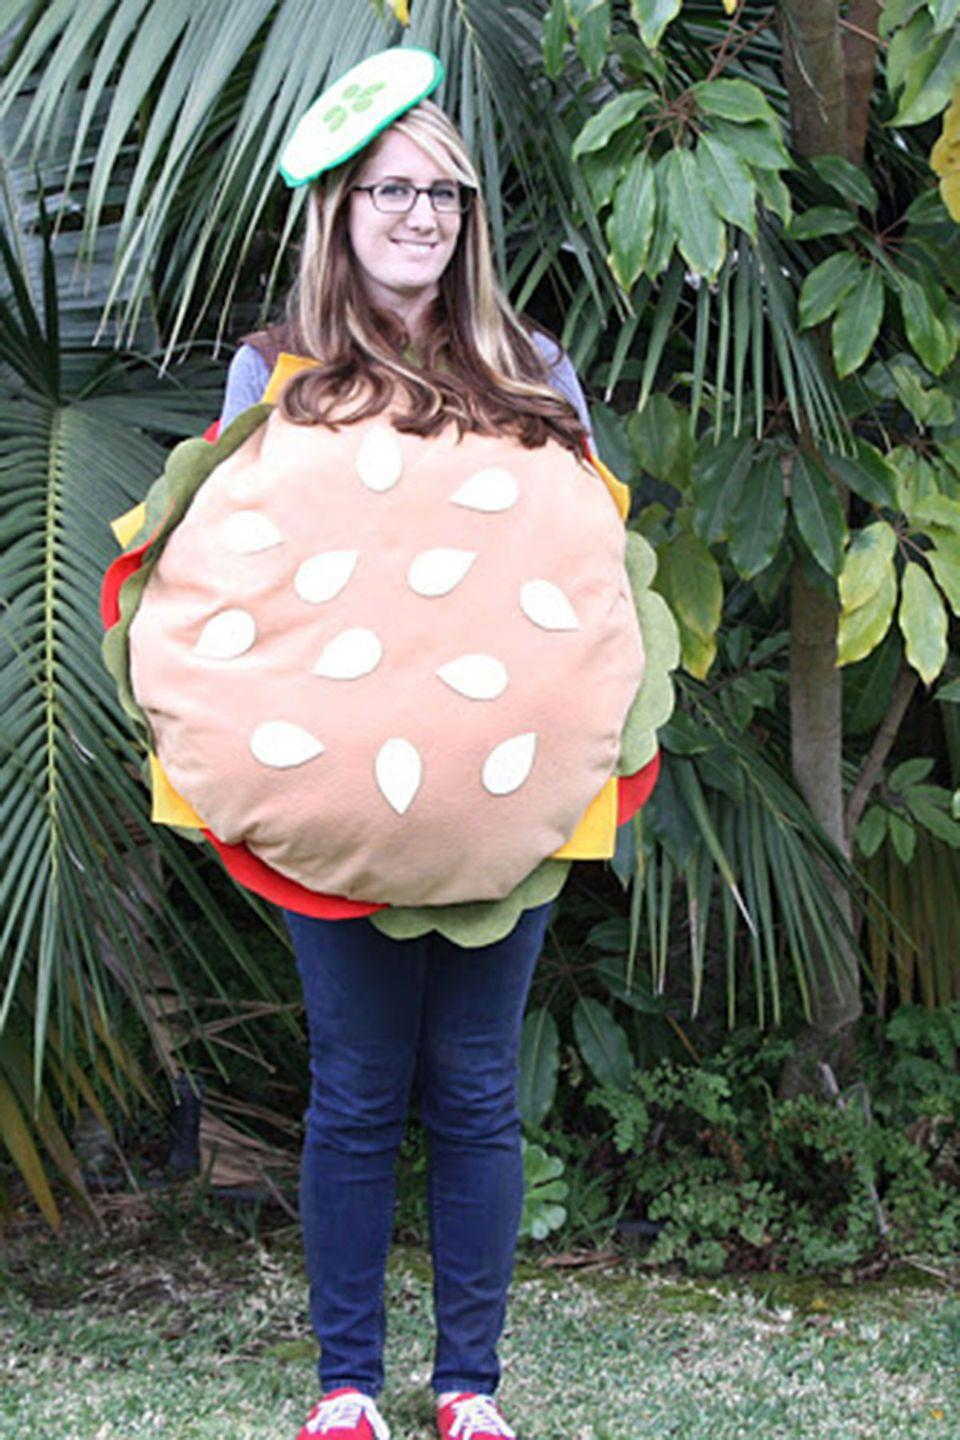 """<p>We're partial to the pickle beret, but you can customize this easy Halloween costume with your toppings of choice. </p><p><strong>Get the tutorial at <a href=""""http://www.pleasenotepaper.com/2013/10/diy-no-sew-burger-costume.html"""" rel=""""nofollow noopener"""" target=""""_blank"""" data-ylk=""""slk:Please Note Paper"""" class=""""link rapid-noclick-resp"""">Please Note Paper</a>.</strong></p><p><a class=""""link rapid-noclick-resp"""" href=""""https://www.amazon.com/Tan-Acrylic-Felt-72-yard/dp/B01ENI8RN6/ref=sr_1_2?tag=syn-yahoo-20&ascsubtag=%5Bartid%7C10050.g.4571%5Bsrc%7Cyahoo-us"""" rel=""""nofollow noopener"""" target=""""_blank"""" data-ylk=""""slk:SHOP TAN FELT""""><strong>SHOP TAN FELT</strong></a></p>"""